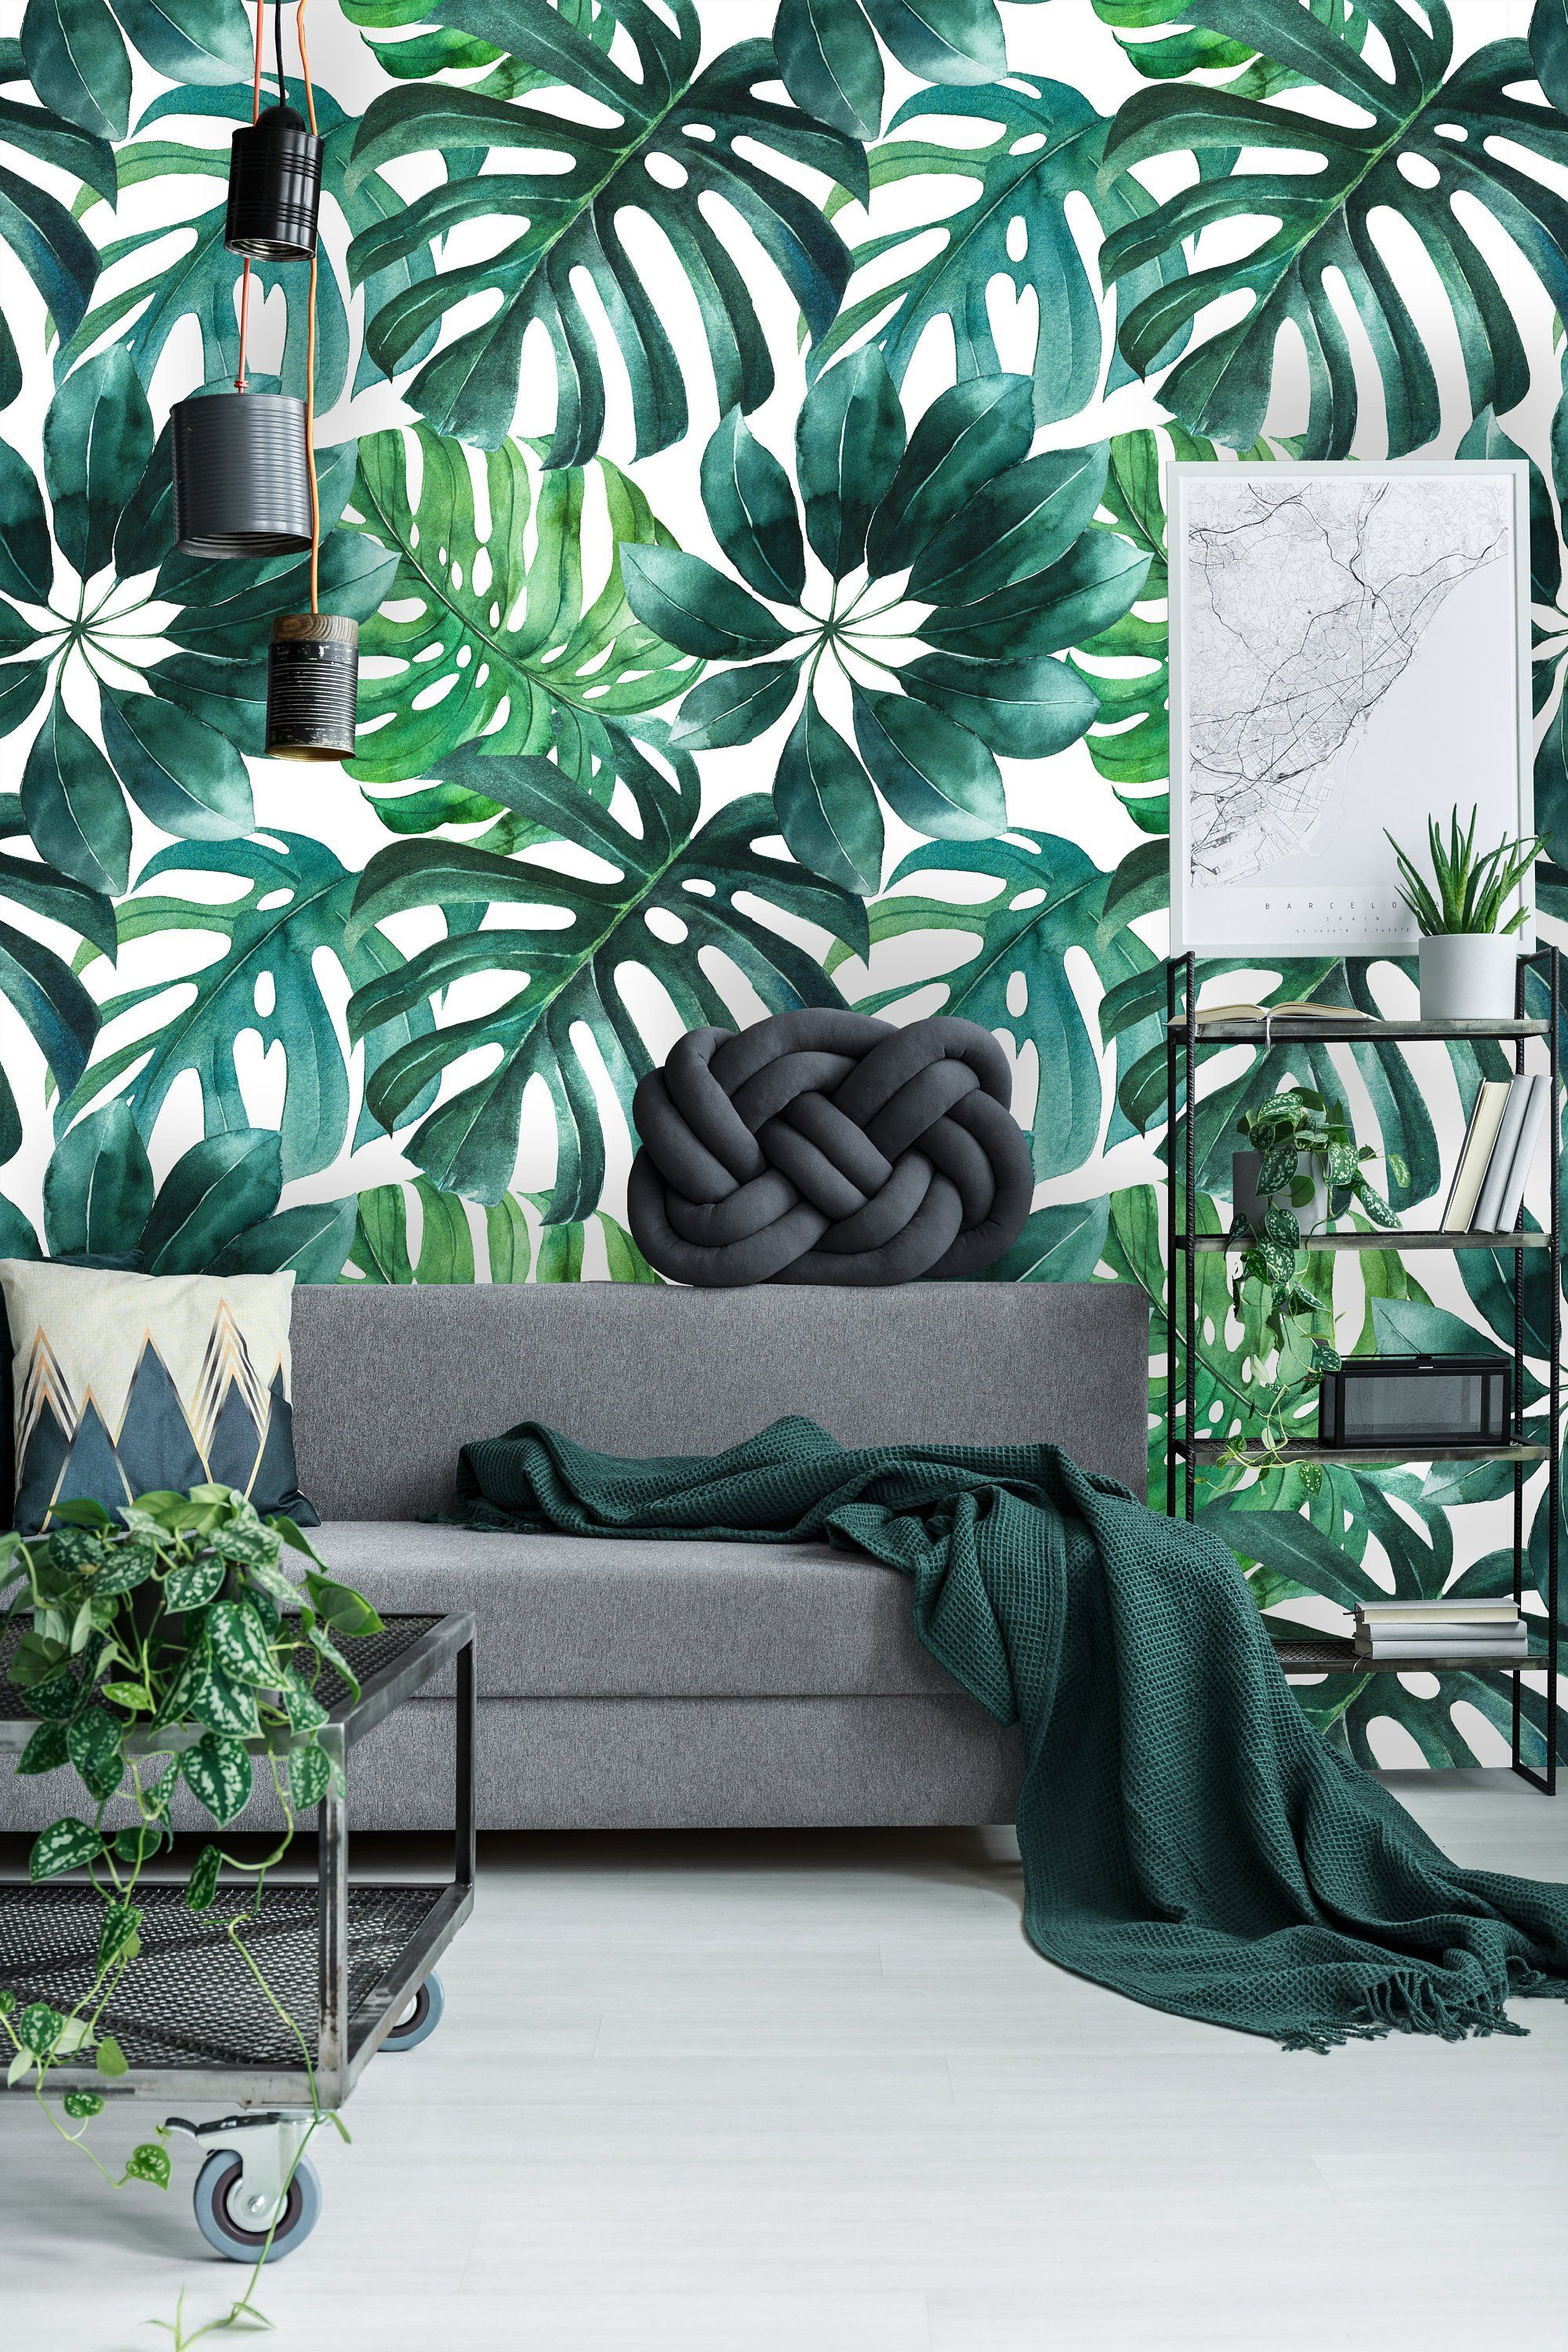 Removable Wallpaper Self Adhesive Wallpaper Green Watercolor Etsy Removable Wallpaper Peel And Stick Wallpaper Wallpaper Roll